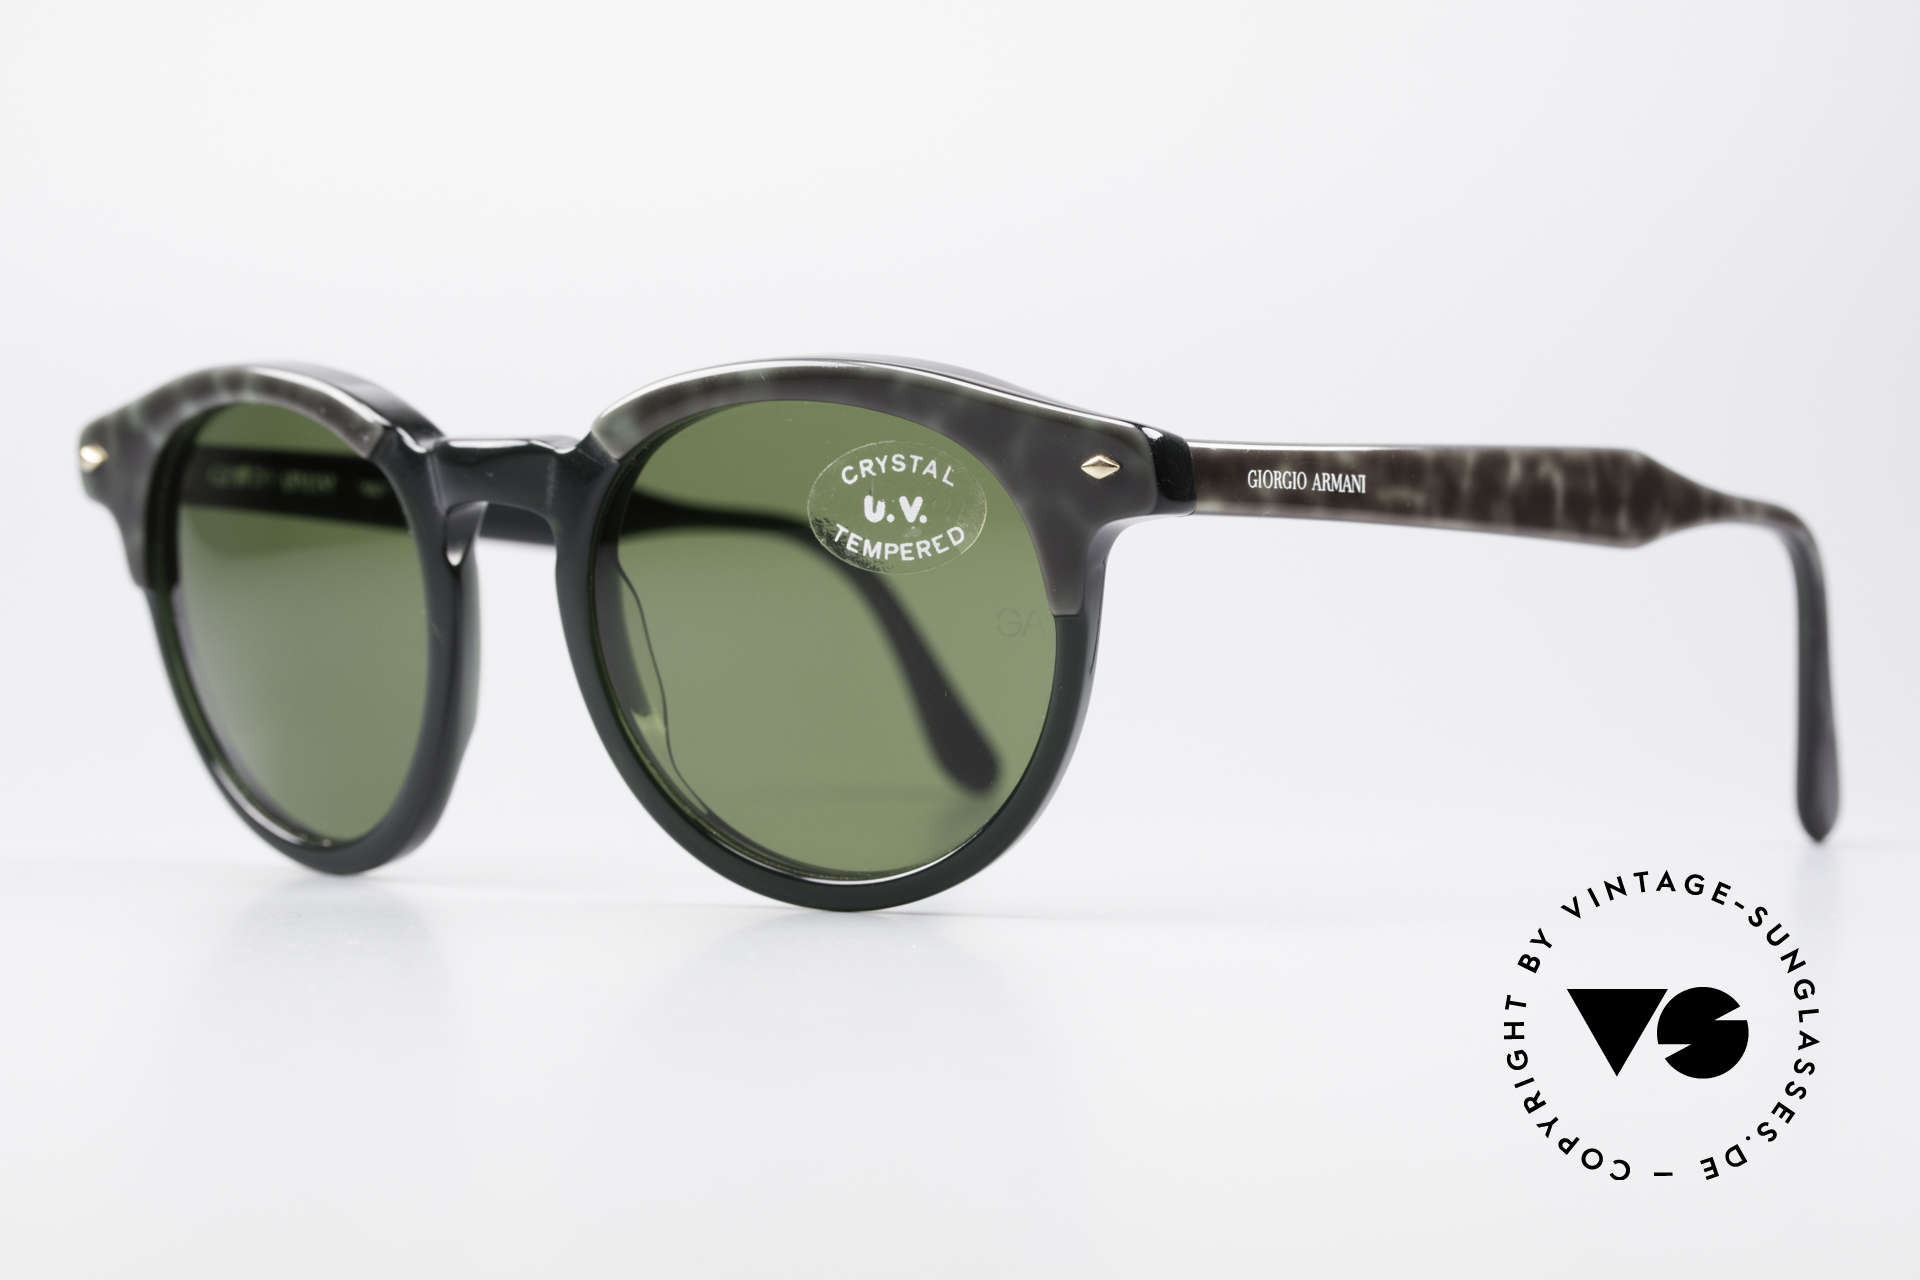 Giorgio Armani 901 Johnny Depp Sunglasses, inspired by the 'Tart Optical Arnel' frames of the 1960's, Made for Men